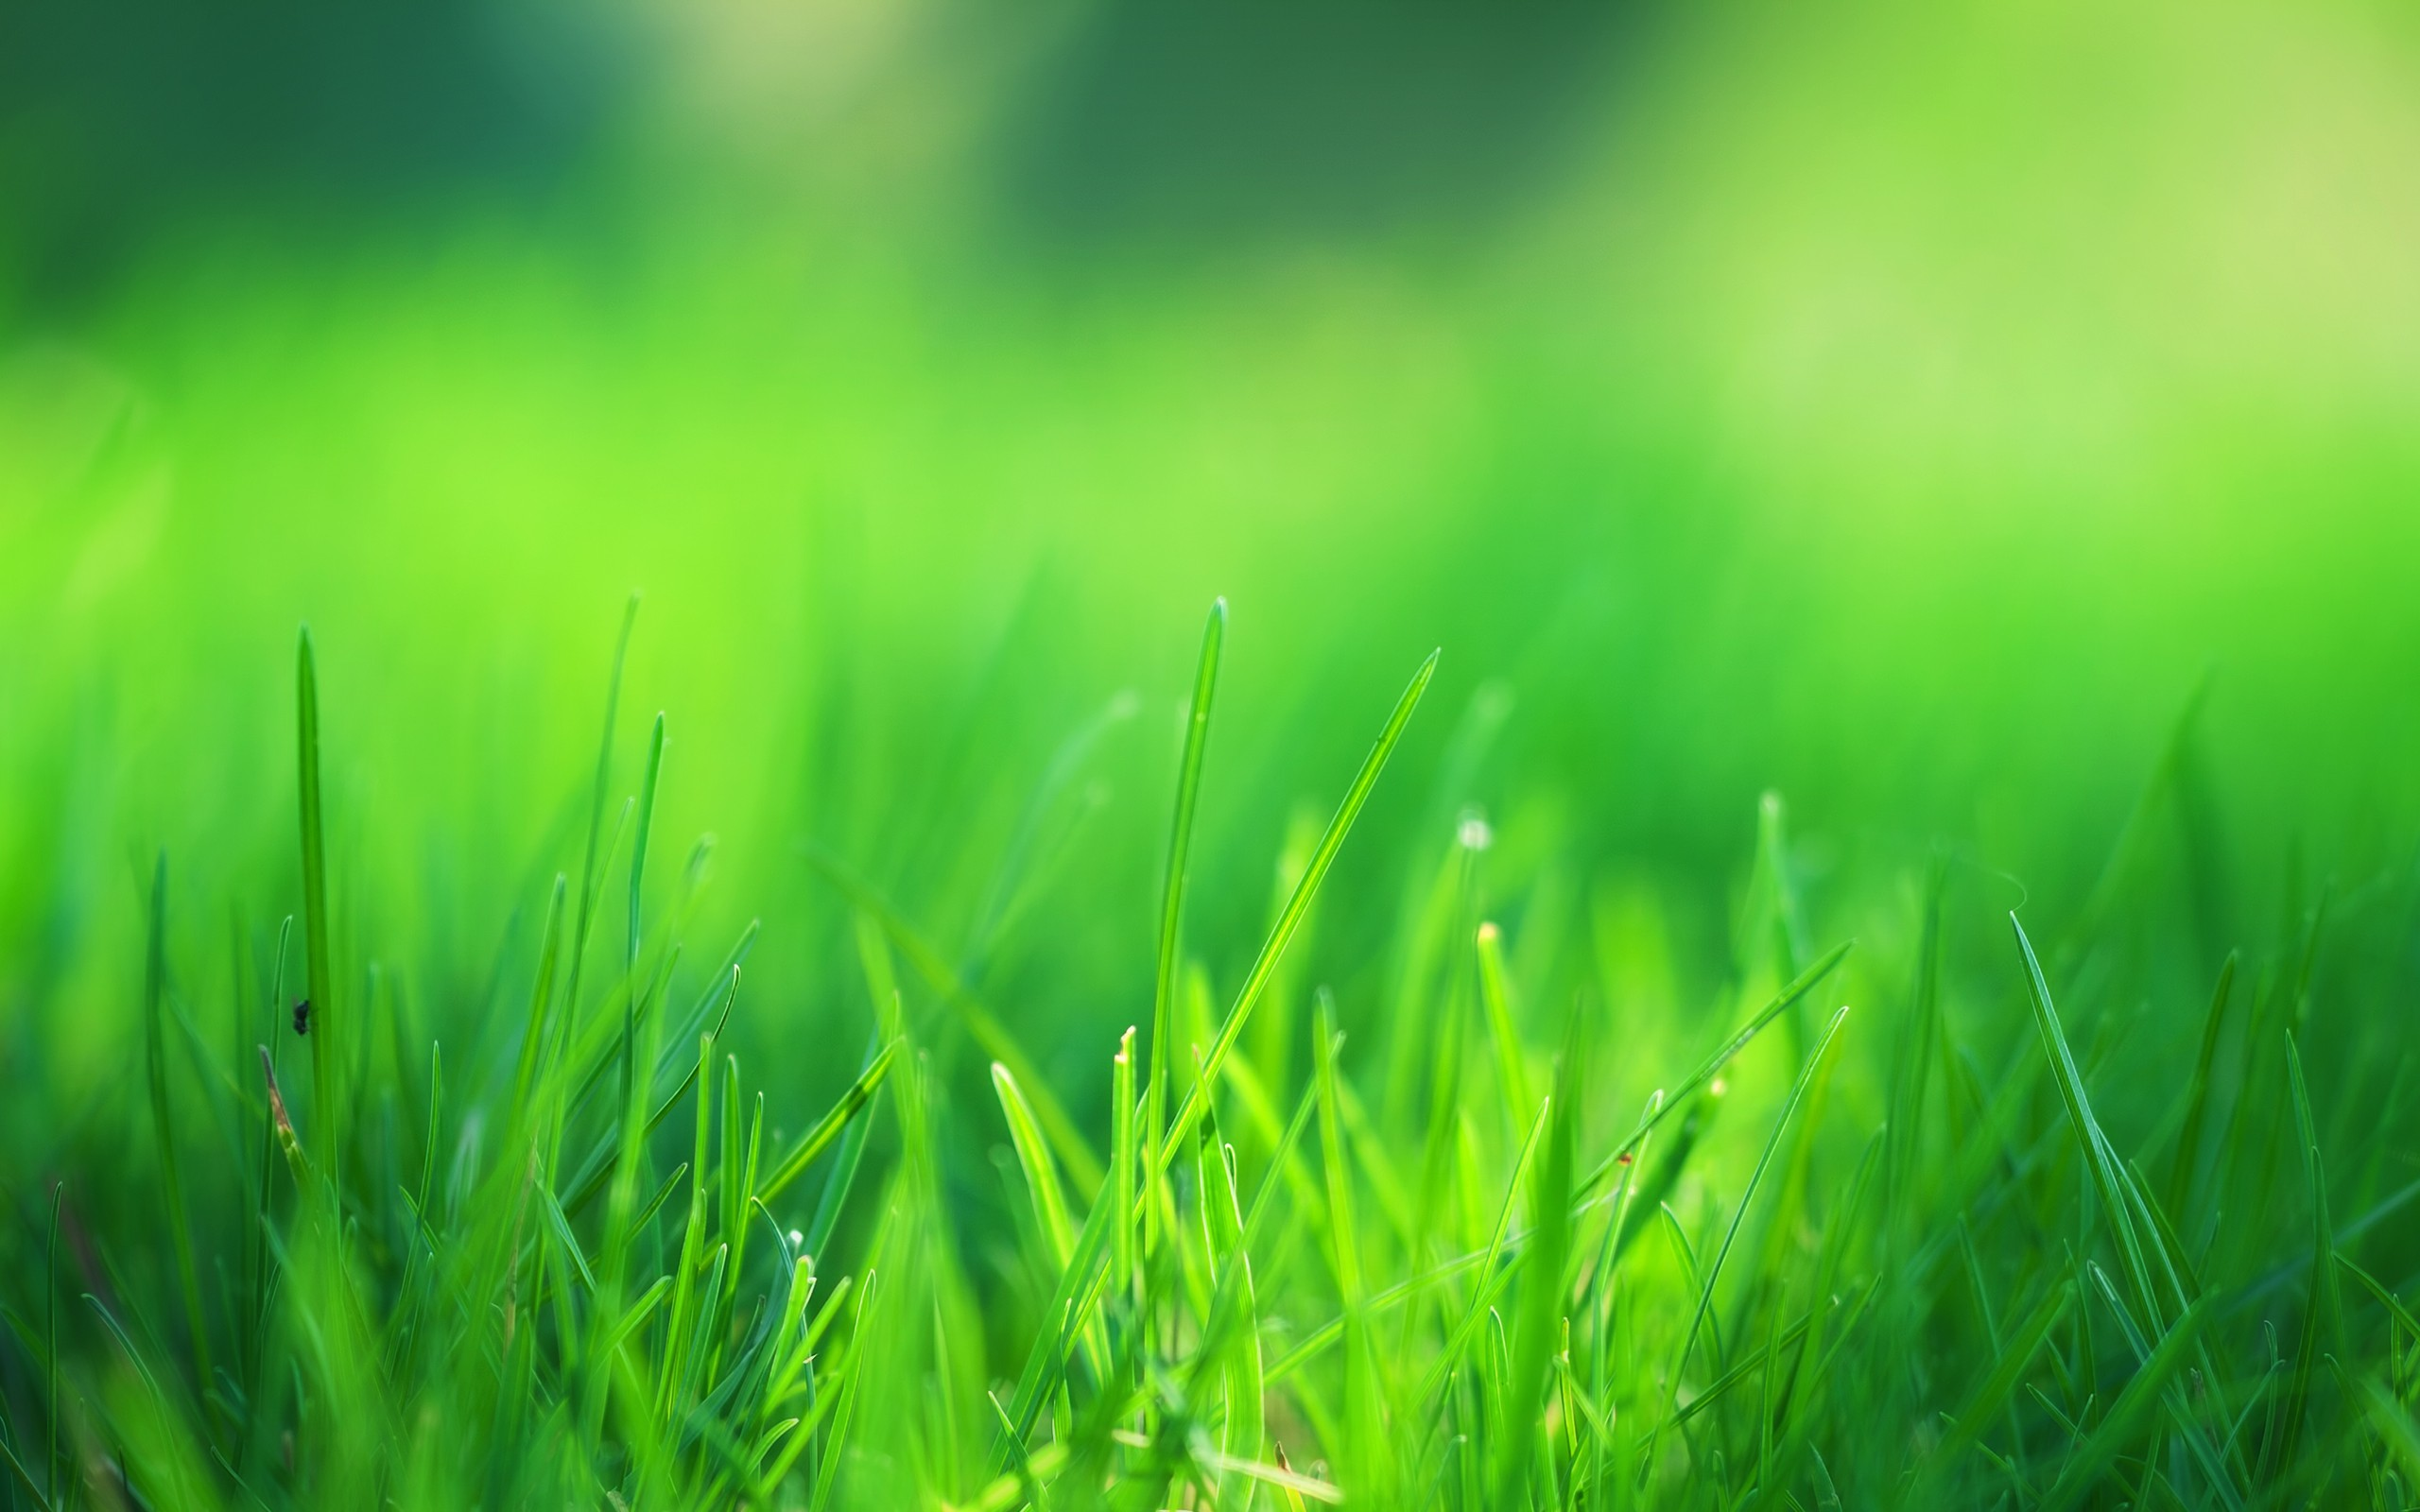 4K Green Grass Wallpapers High Quality